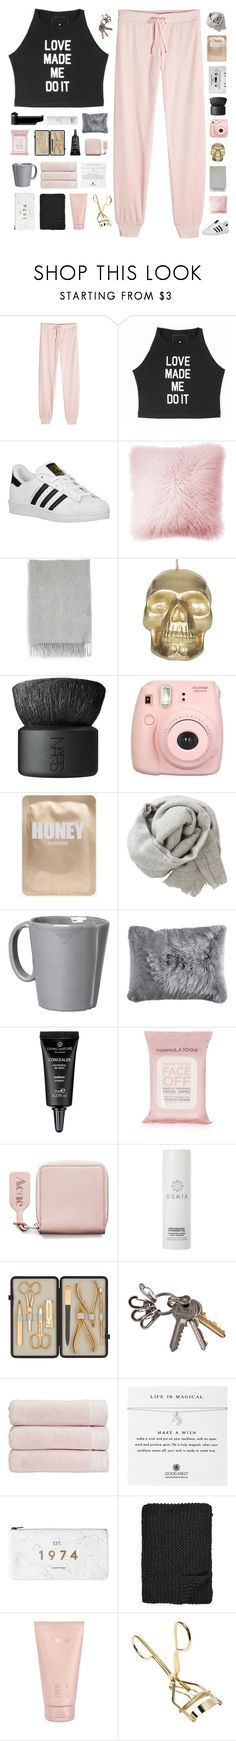 """""""those three words ☆ like to join my taglist!"""" by scattered-parts ❤ liked on Polyvore featuring Juicy Couture, adidas Originals, JAG Zoeppritz, Acne Studios, Icon Jewellery, NARS Cosmetics, Fujifilm, CASSETTE, Brunello Cucinelli and Vietri"""